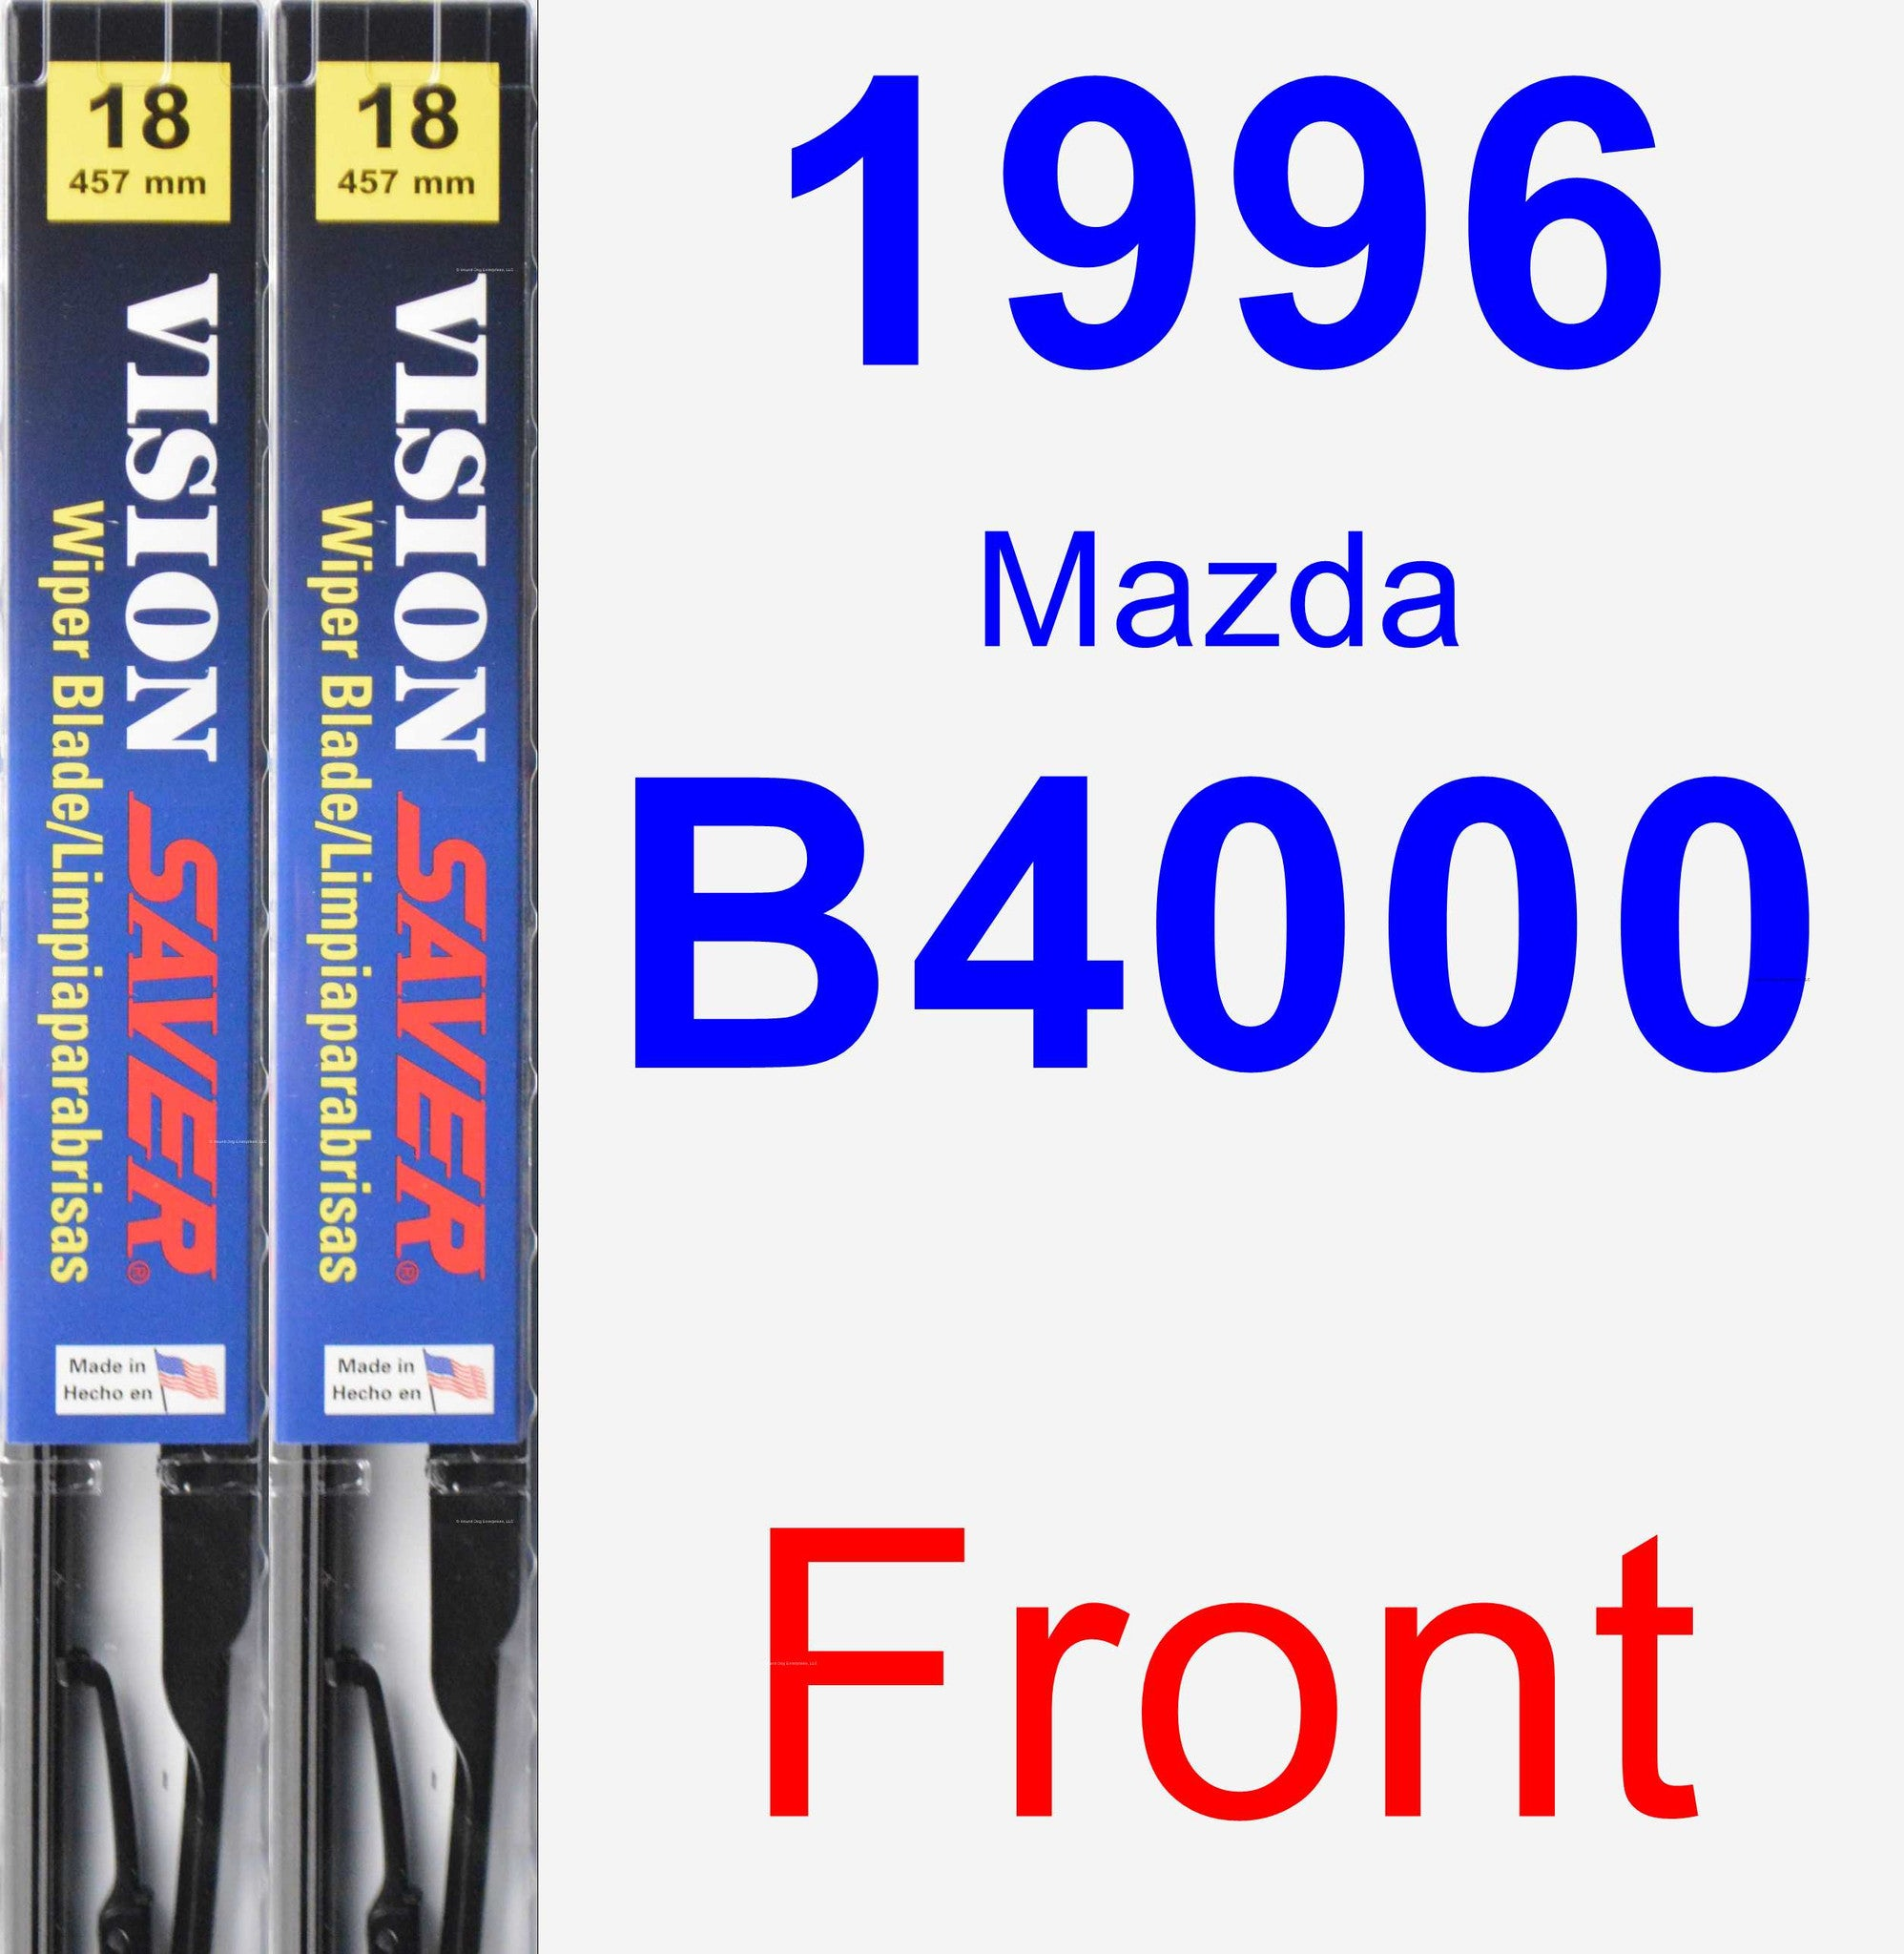 Front Wiper Blade Pack for 1996 Mazda B4000 - Vision Saver